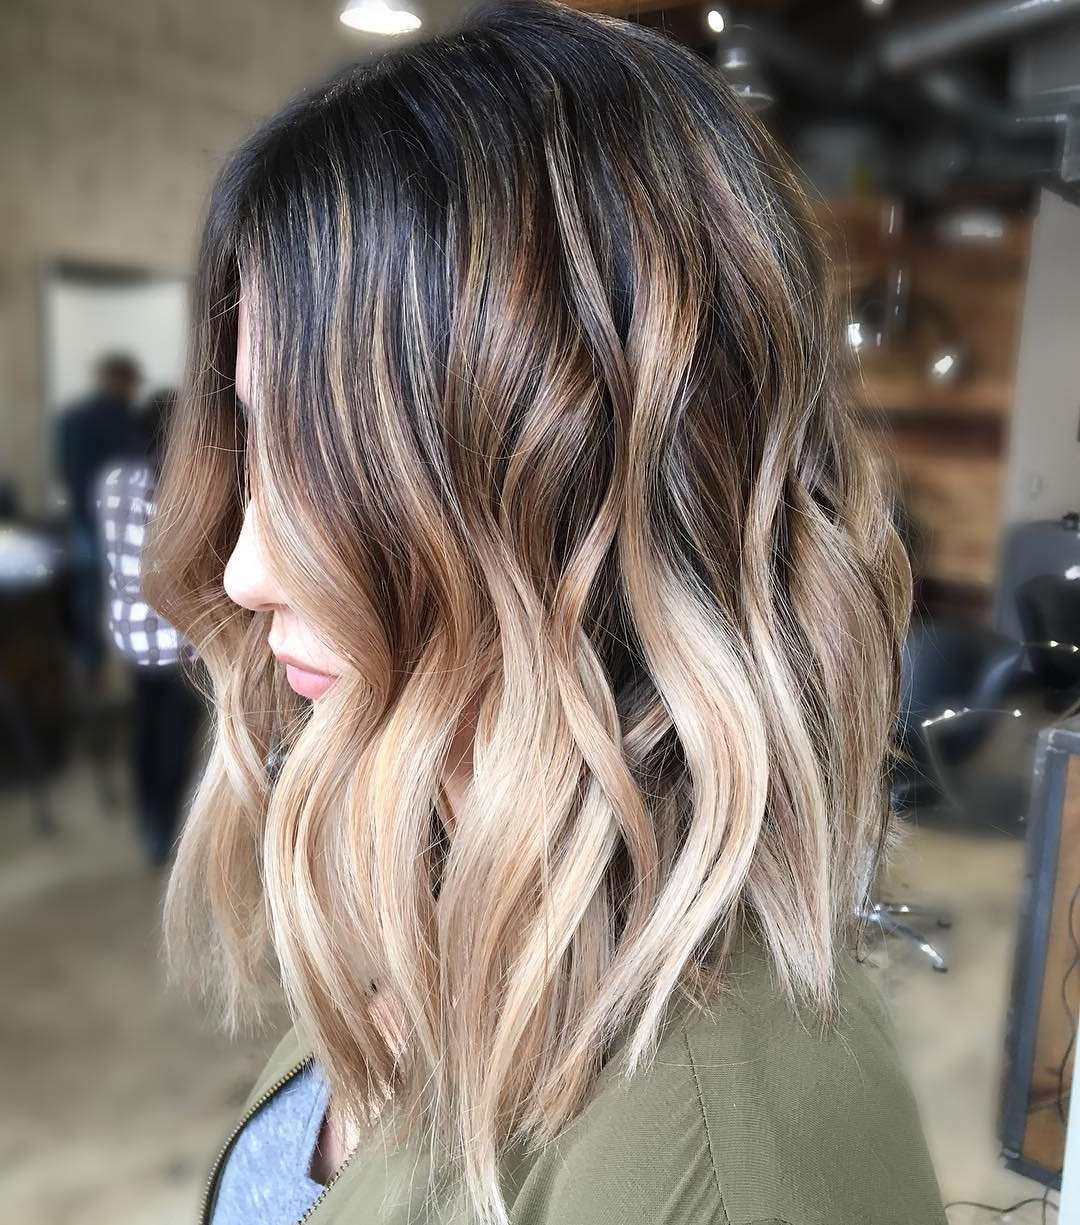 Most Recently Released Long Layered Ombre Hairstyles With 10 Balayage Ombre Hair Styles For Shoulder Length Hair, Women (View 17 of 20)